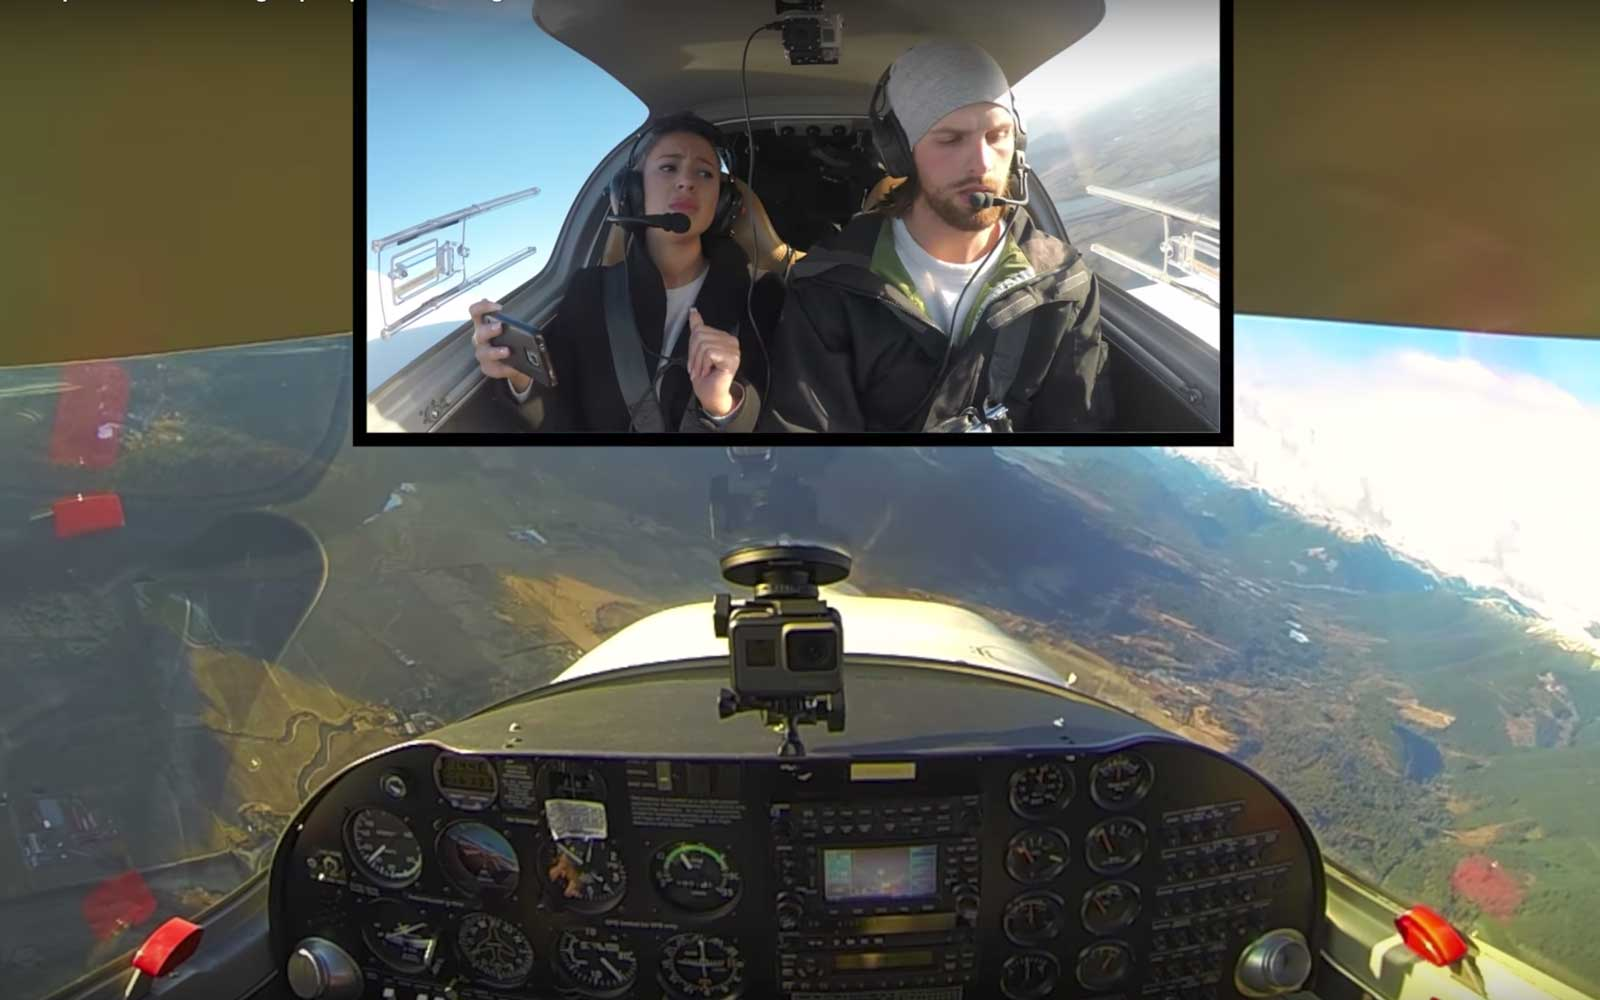 Amateur Pilot Fakes a Plane Crash During Terrifying Proposal